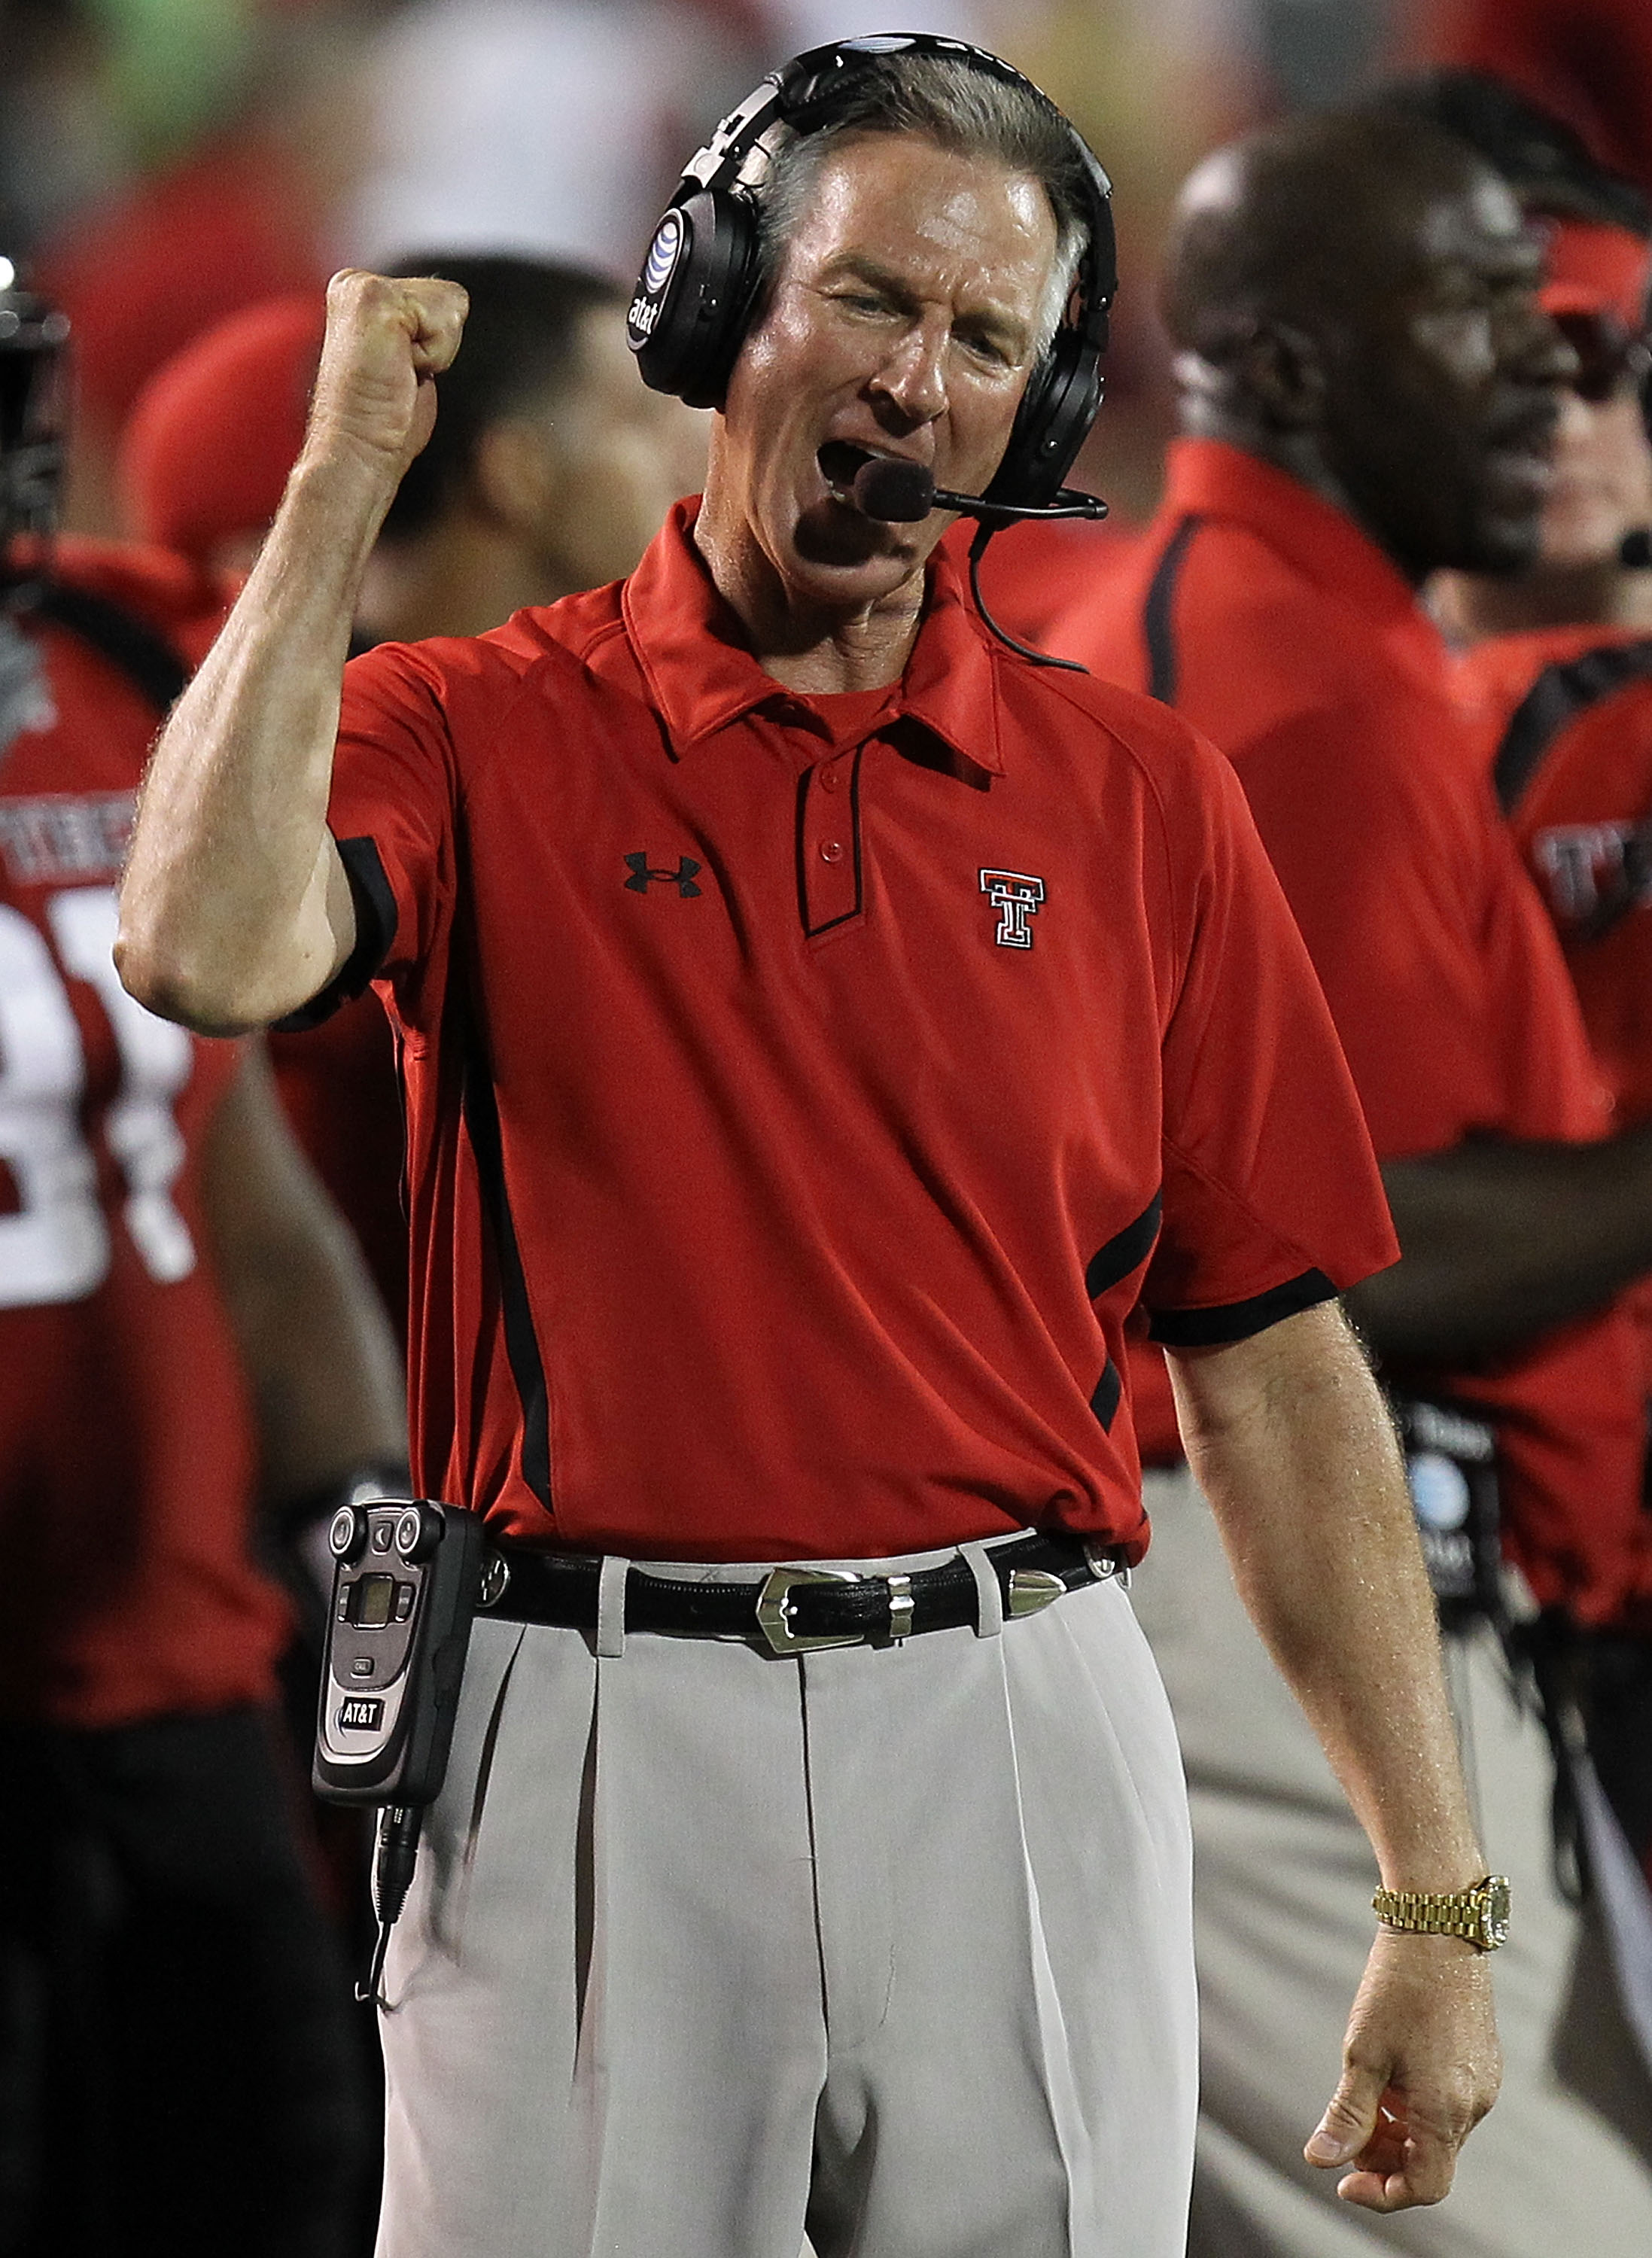 LUBBOCK, TX - SEPTEMBER 18:  Head coach Tommy Tuberville of the Texas Tech Red Raiders reacts on the sidelines during play against the Texas Longhorns at Jones AT&T Stadium on September 18, 2010 in Lubbock, Texas.  (Photo by Ronald Martinez/Getty Images)